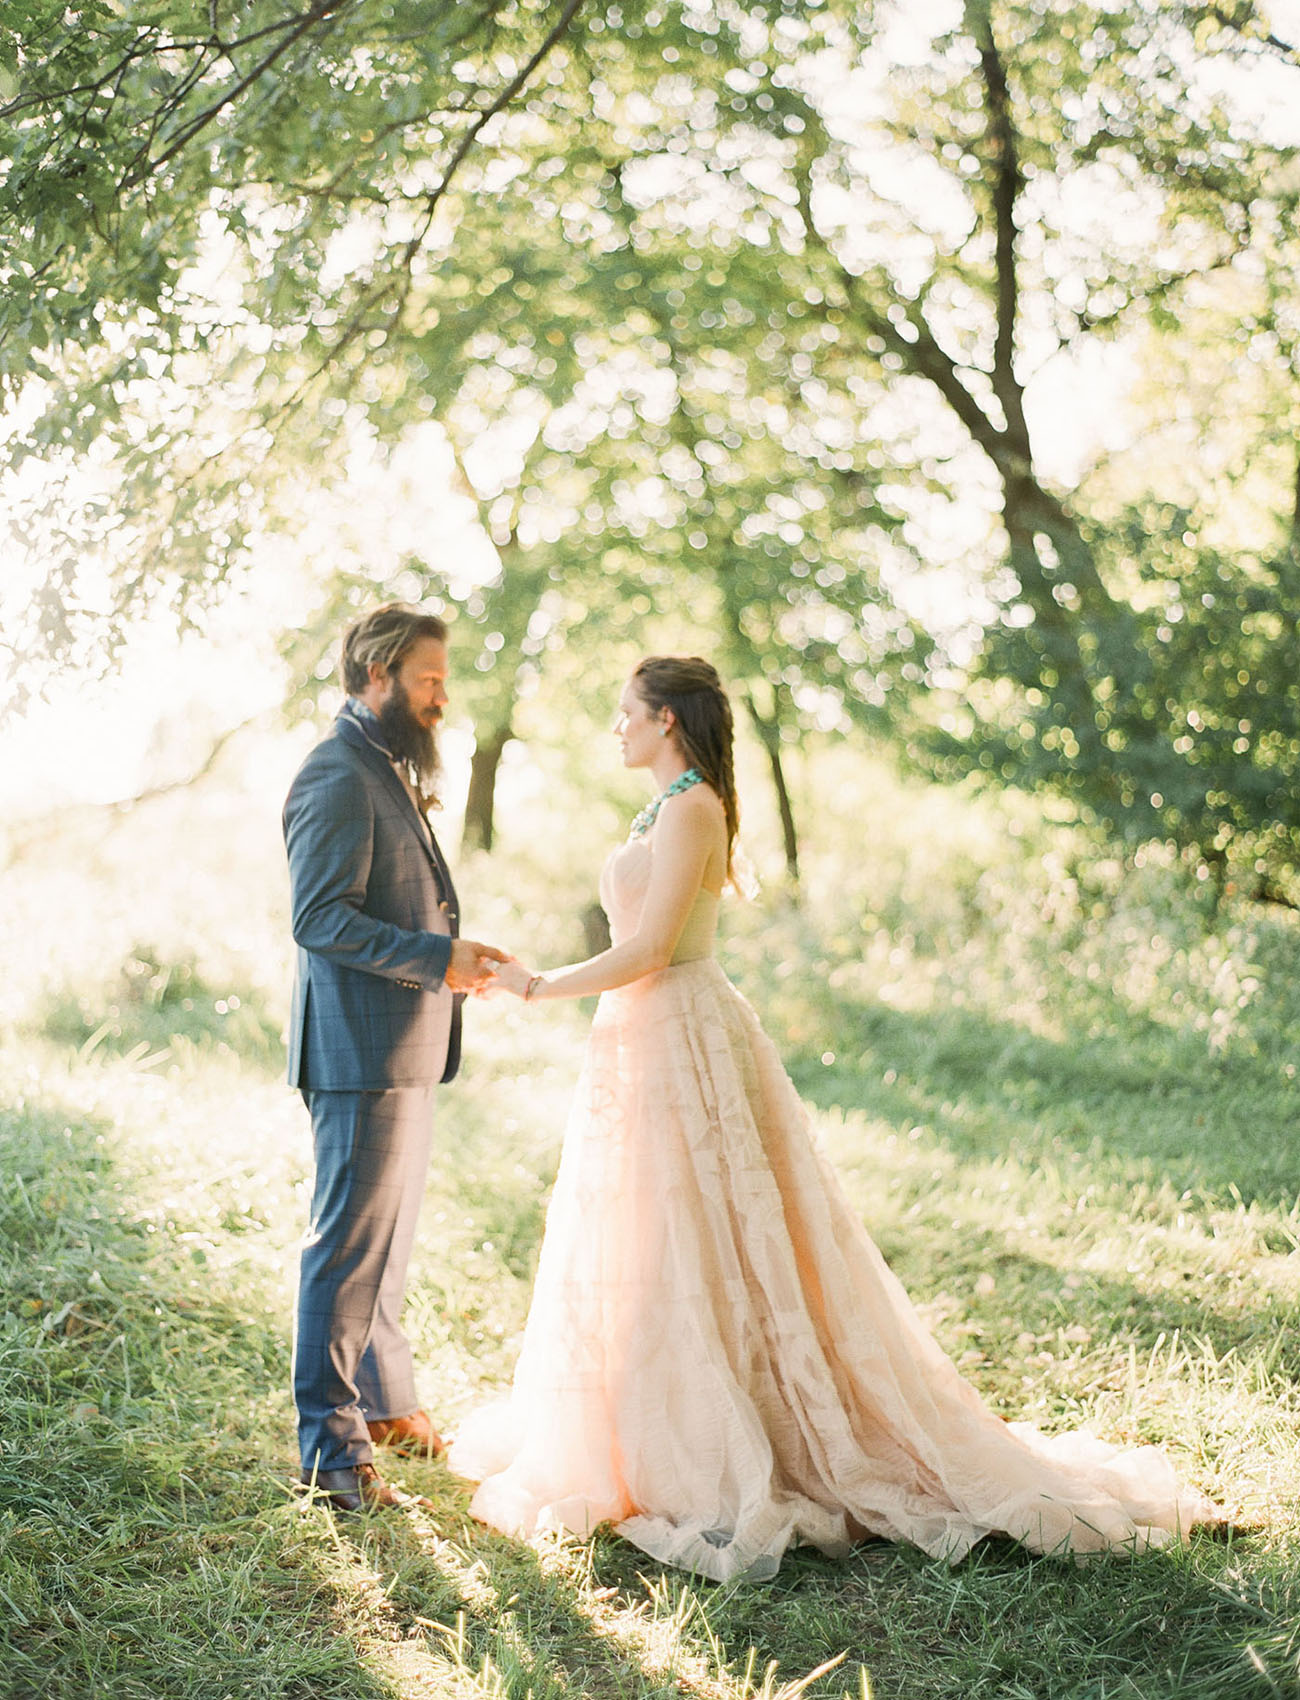 The groom rocked a cool modern suit, cognac shoes and a beard